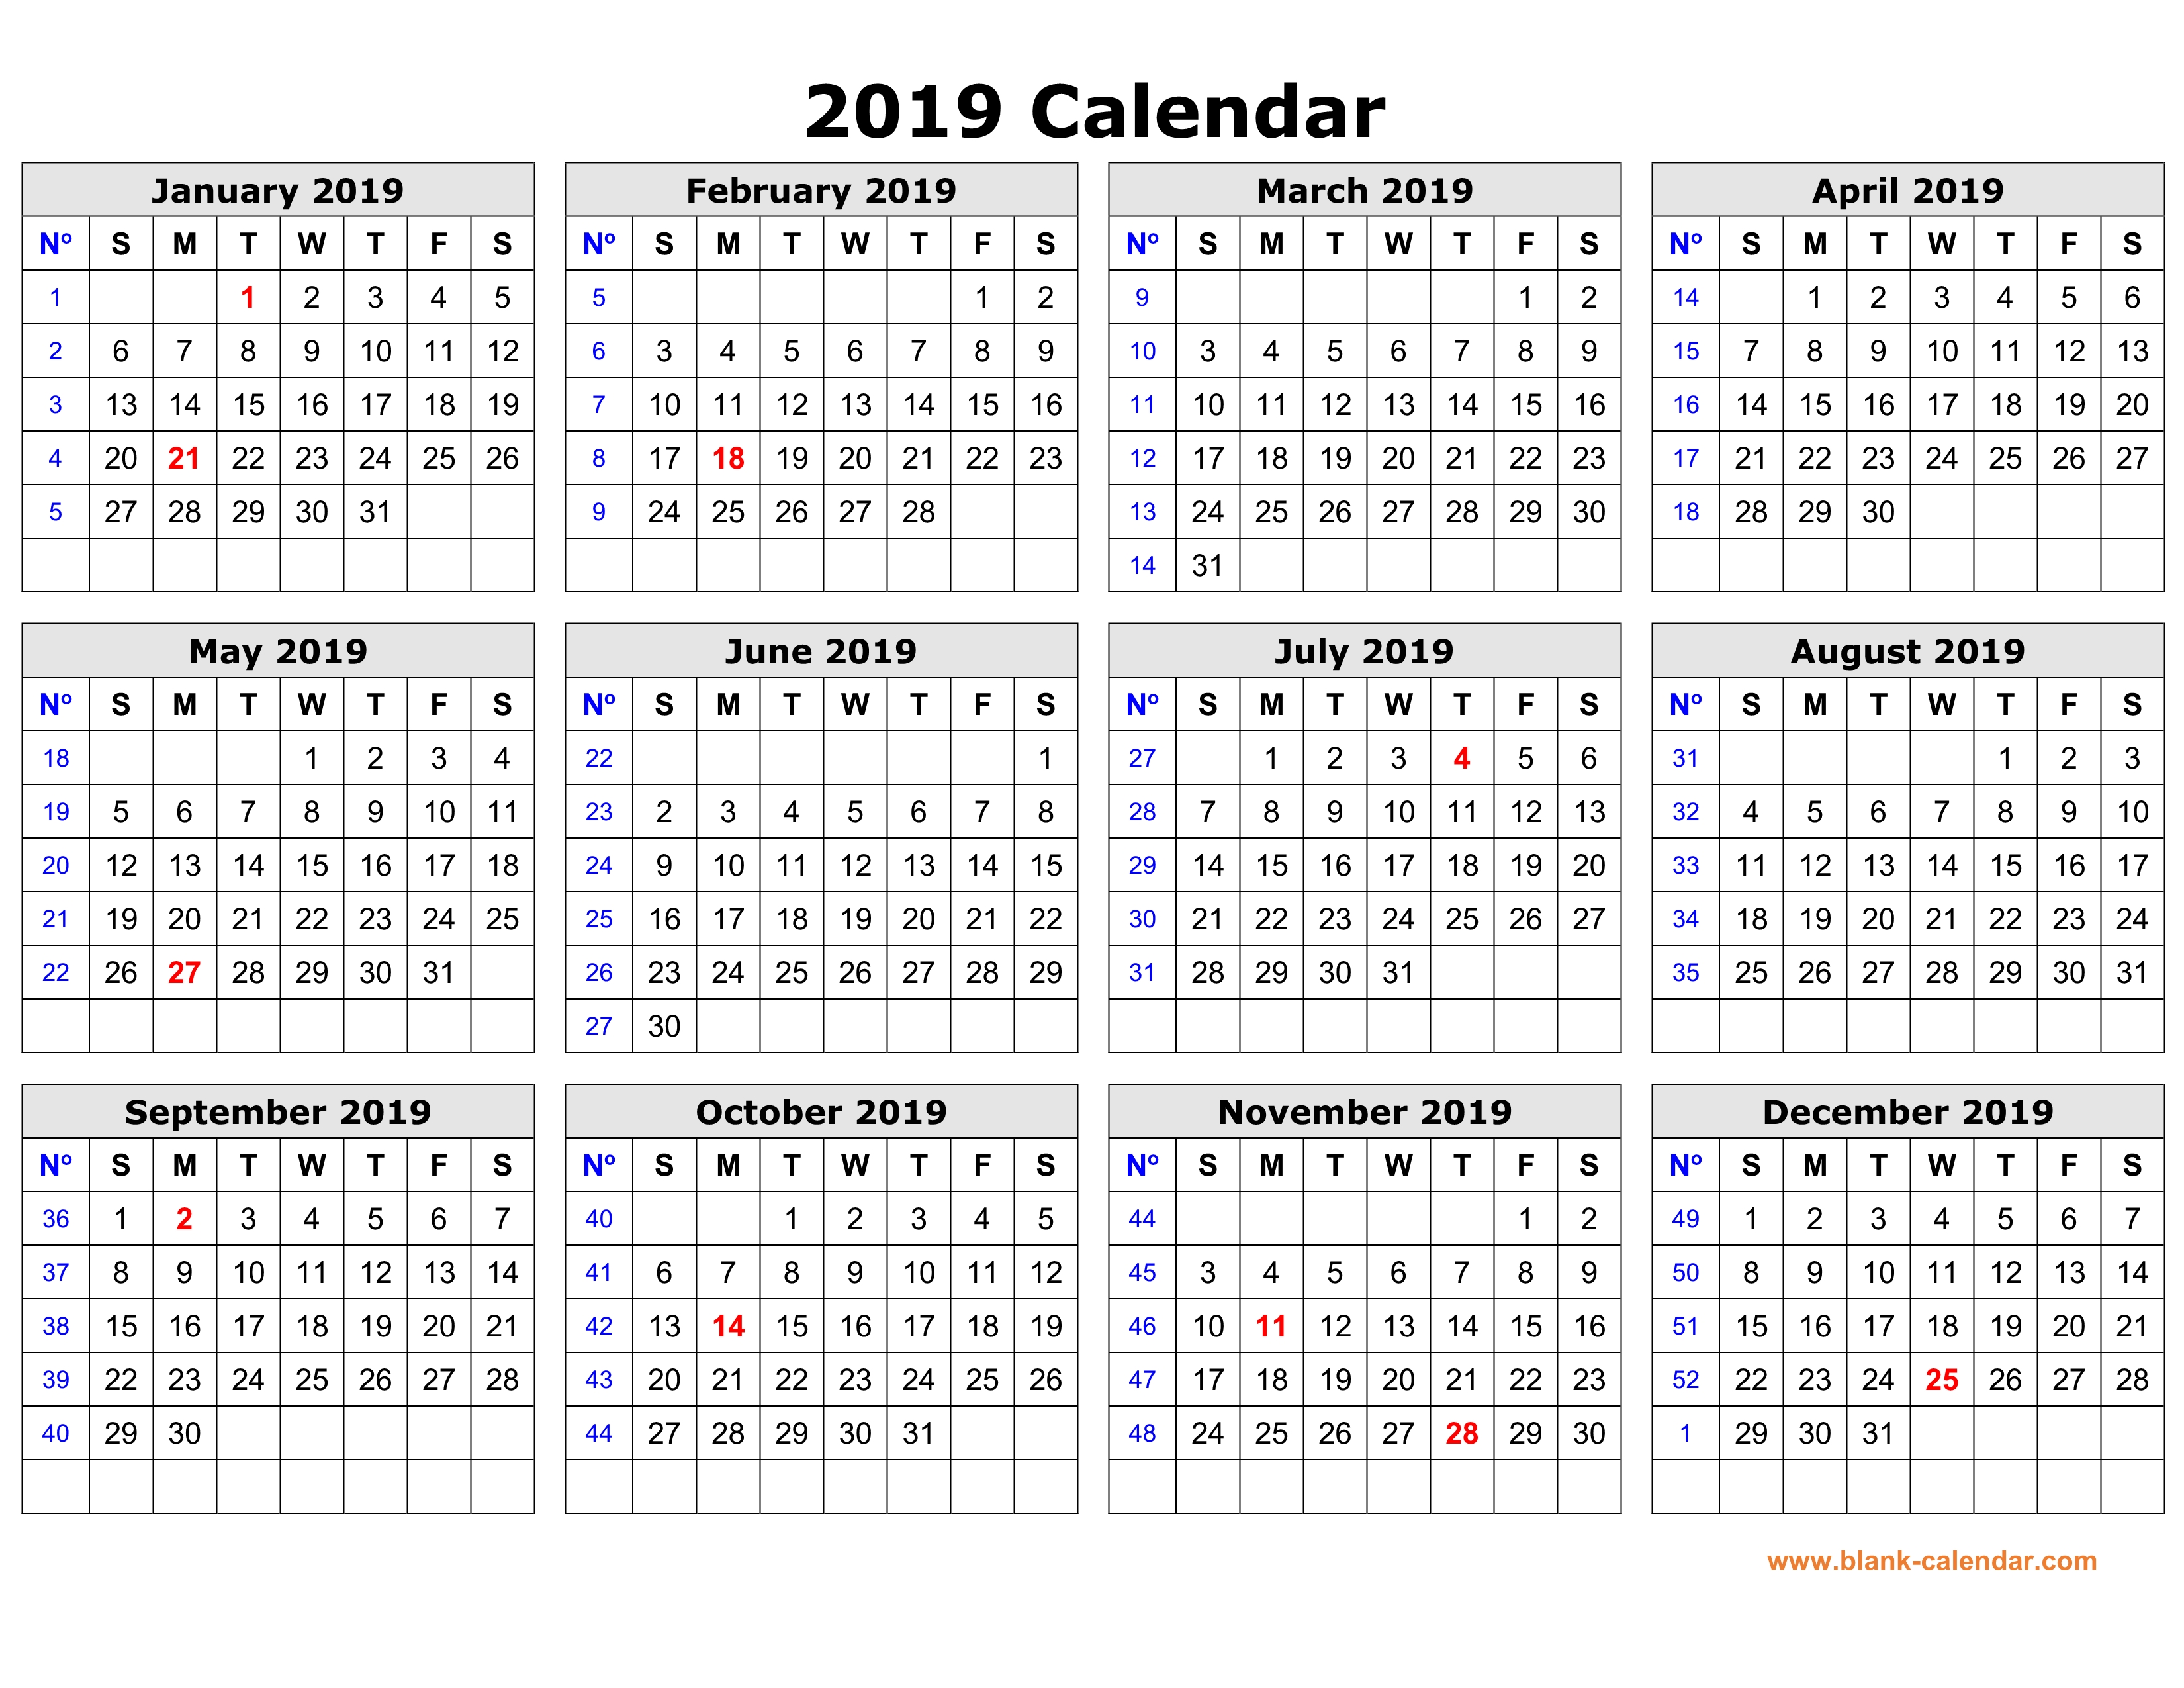 calendars 2019 free printable - Parfu kaptanband co